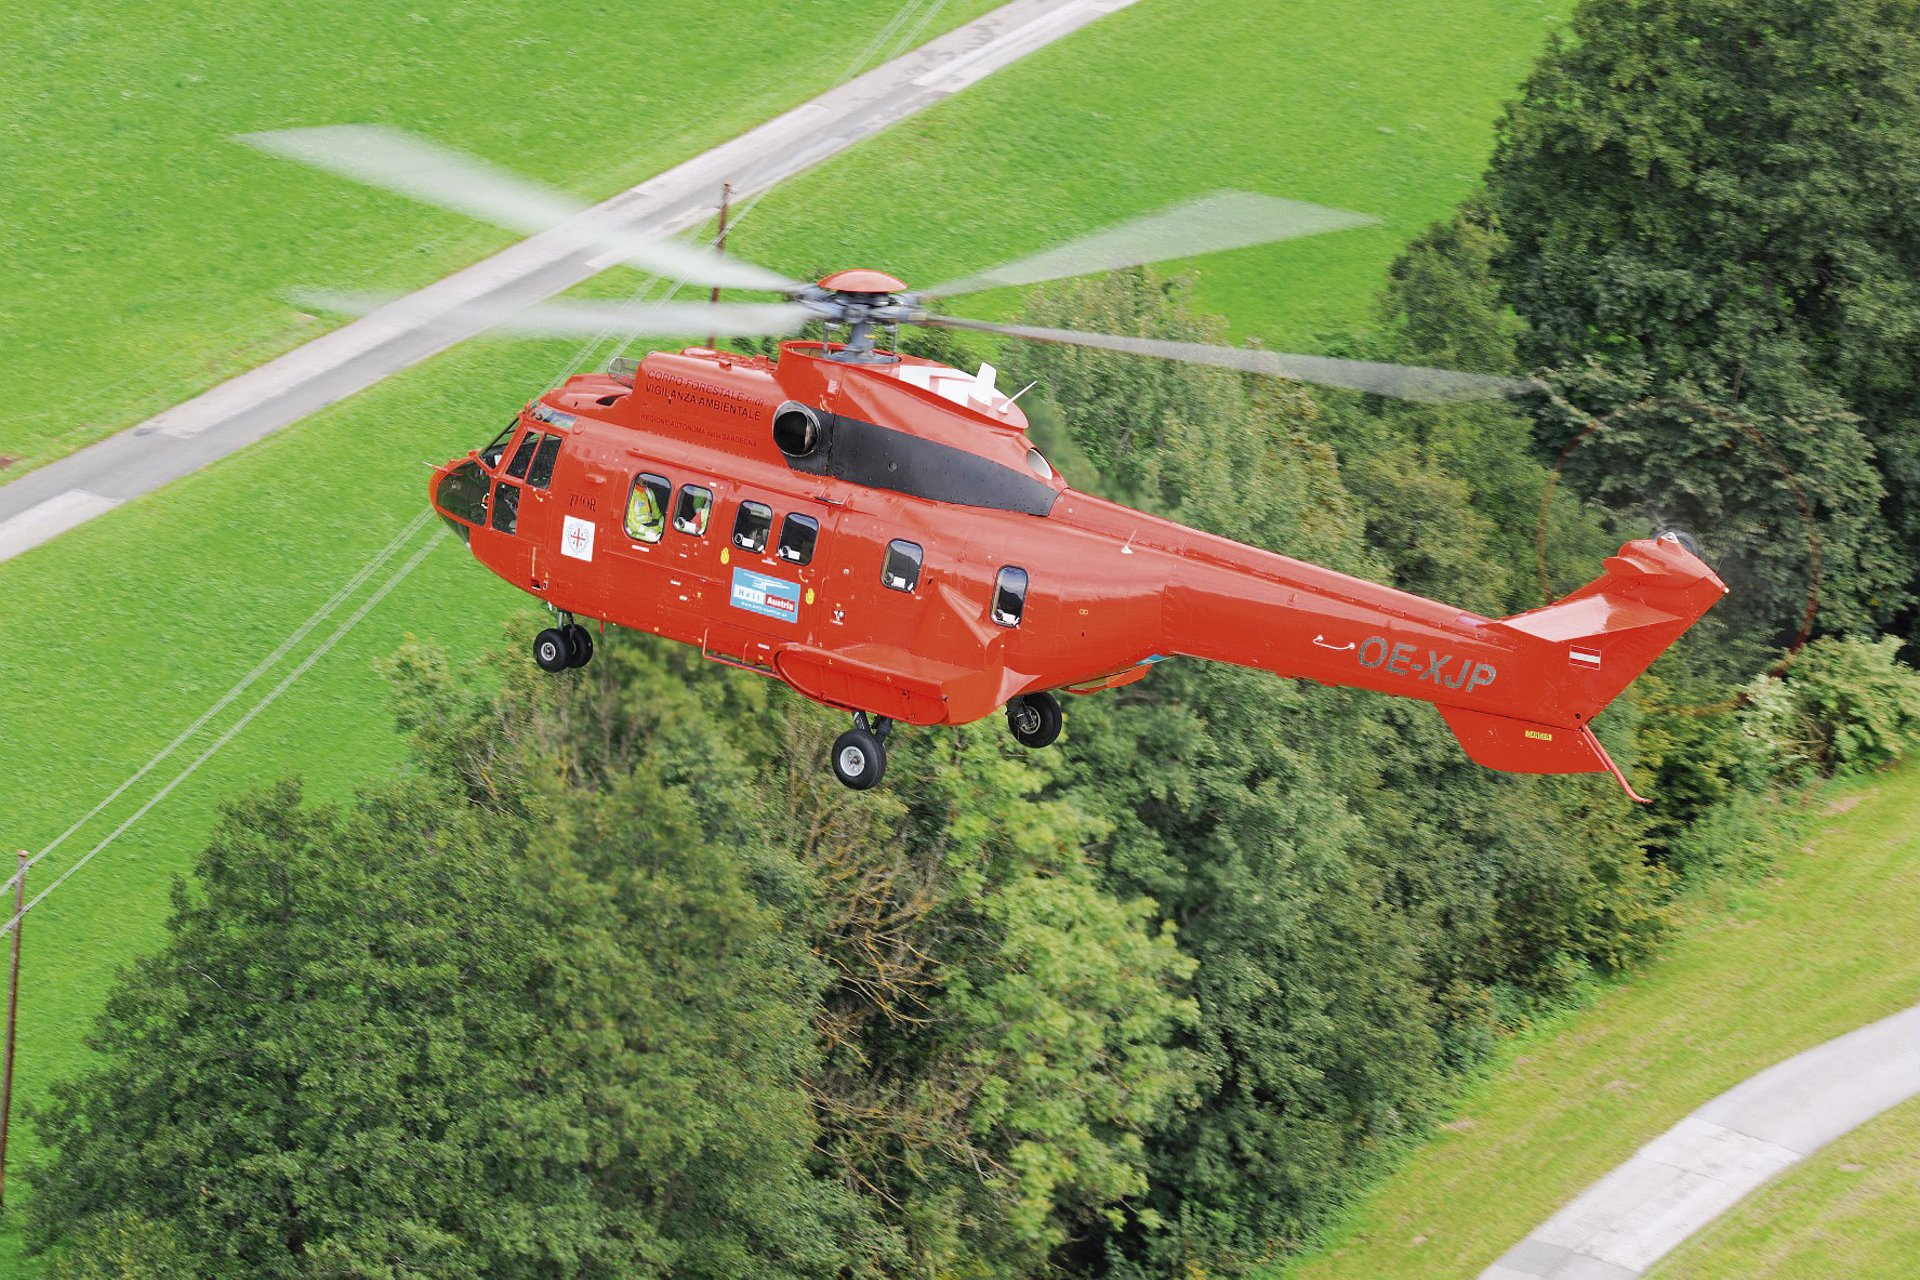 In 2016, Heli Austria acquired four H215 Super Pumas which they converted for heavylift aerial work and firefighting.